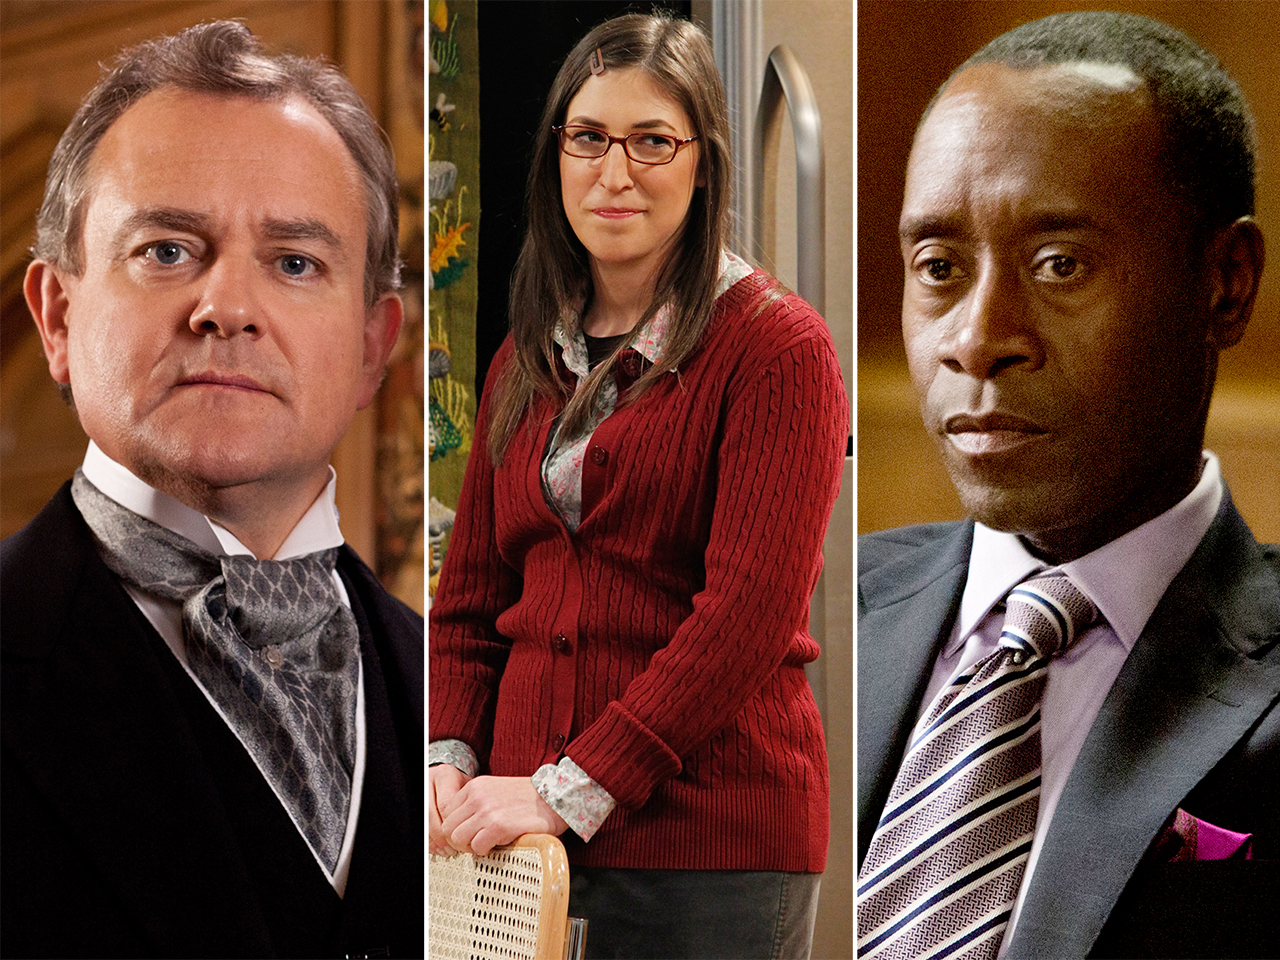 Emmy nominees Hugh Bonneville, Mayim Bialik and Don Cheadle pick their favorite moments.